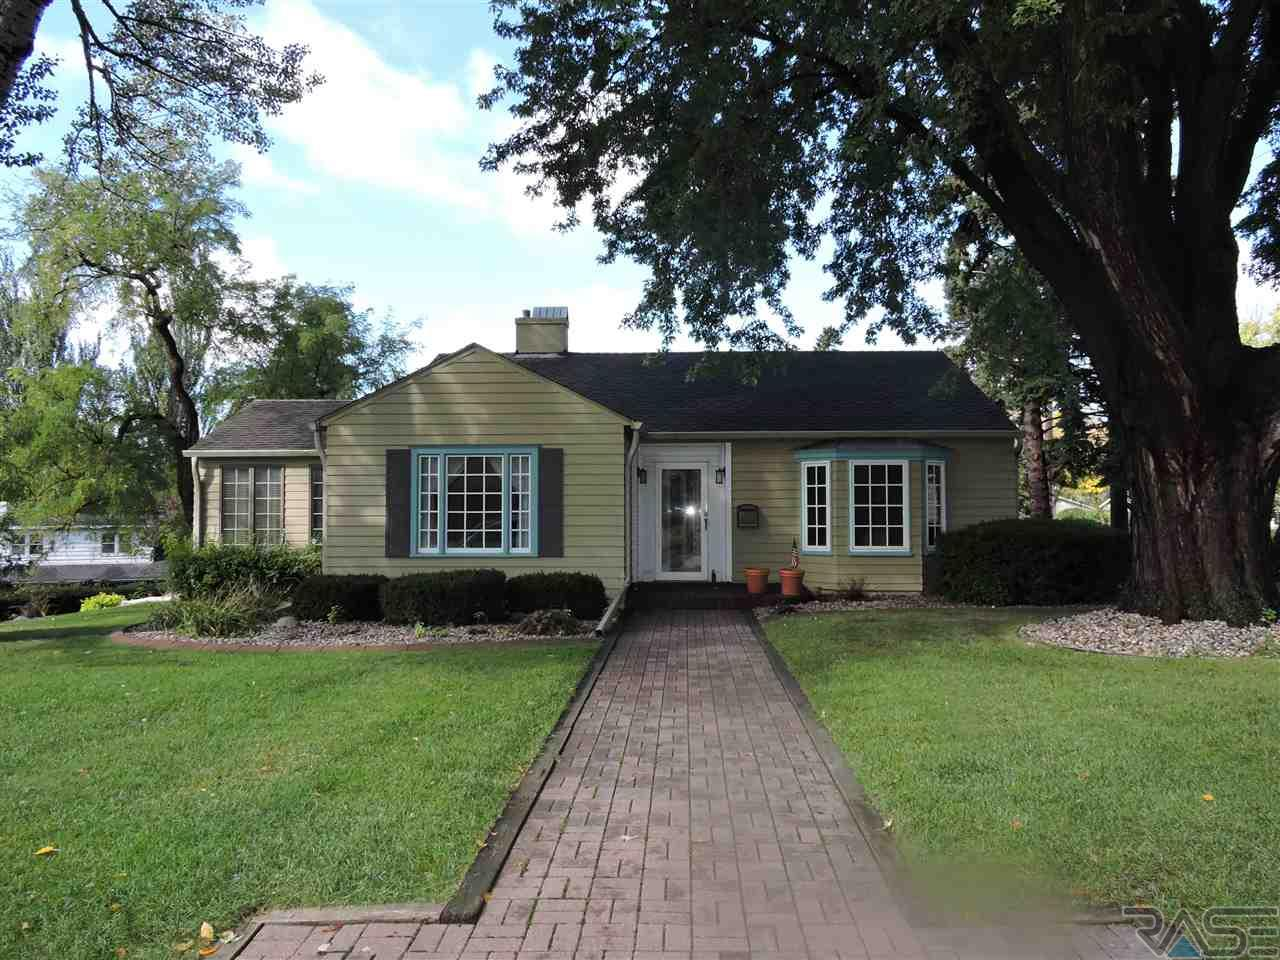 2501 S 4th Ave, Sioux Falls, SD 57105